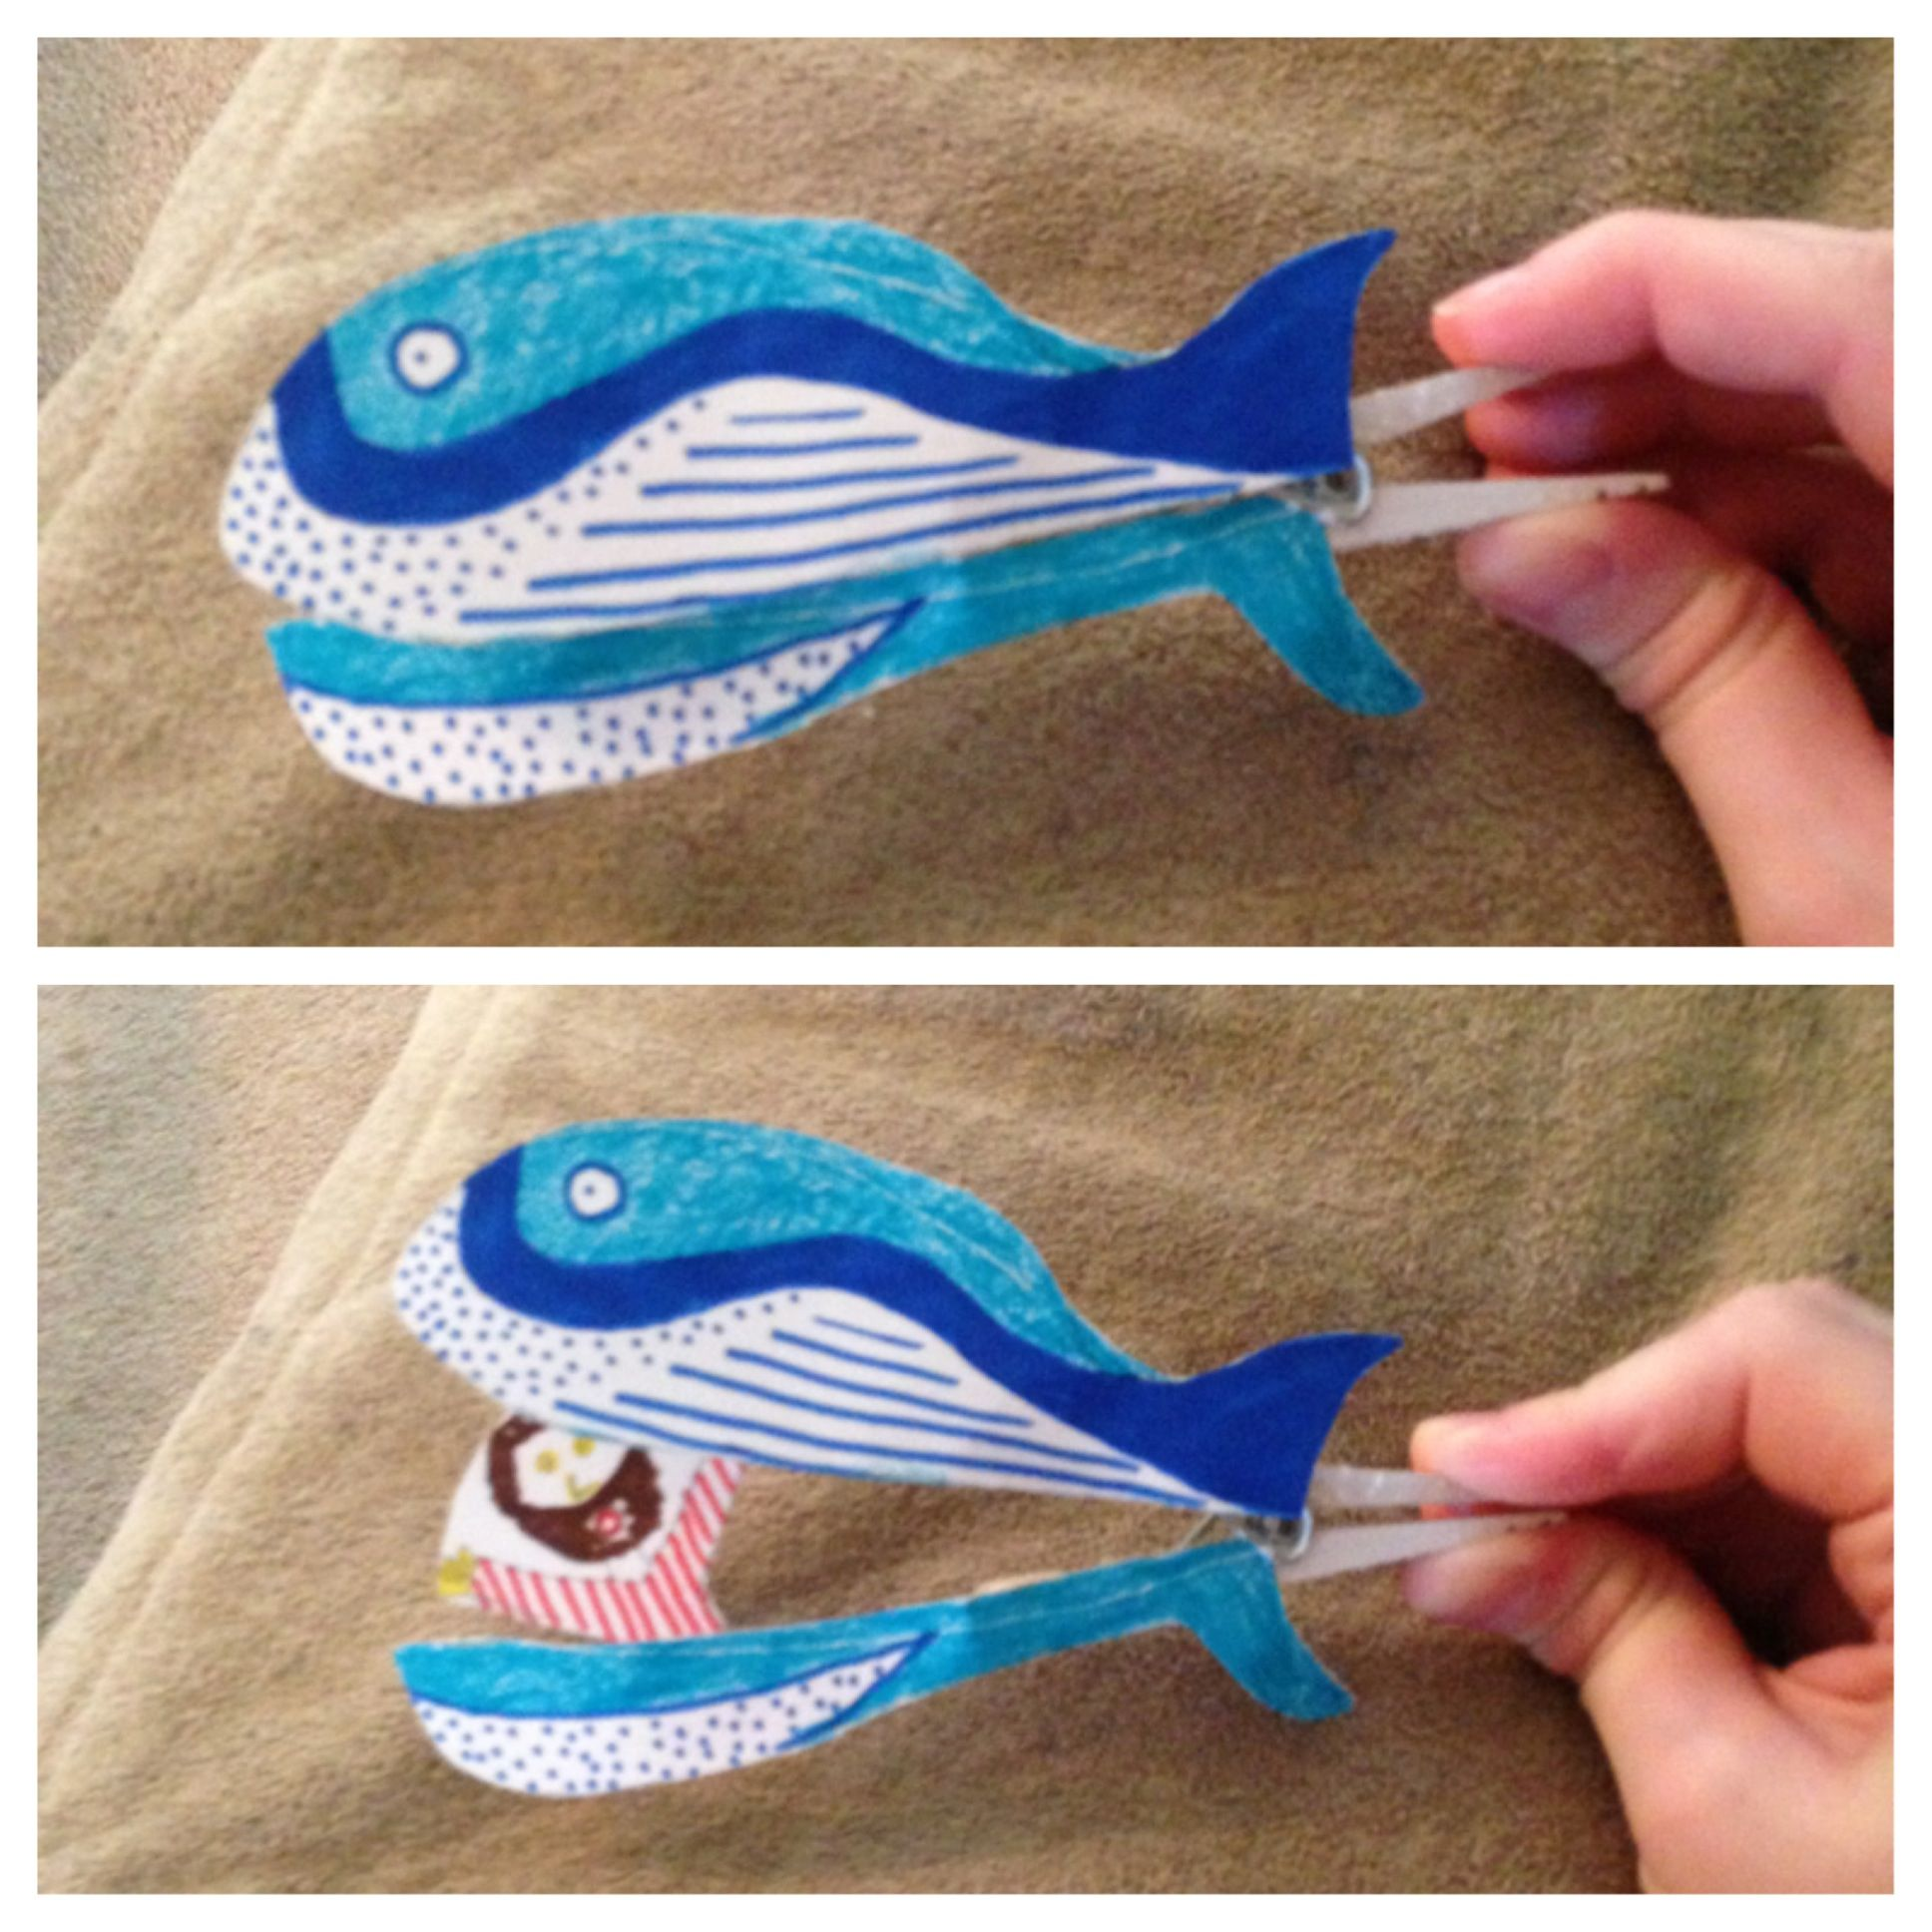 ... and the fish. DIY bible craft. | Children's Church ideas | Pinterest